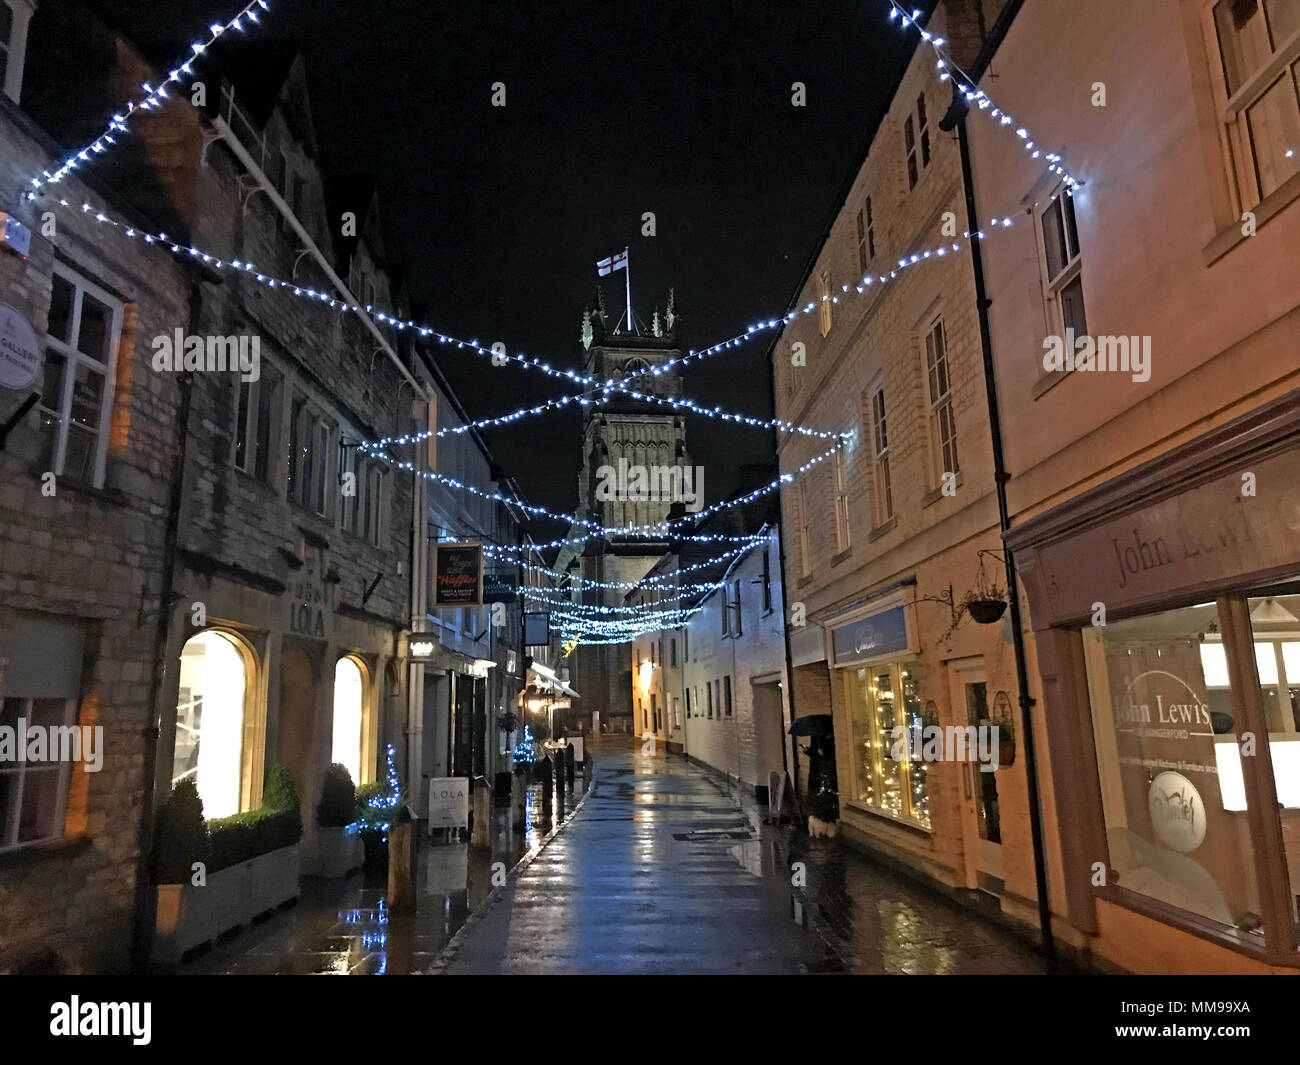 Cirencester market town centre at night, Cotswolds, England, UK - Stock Image